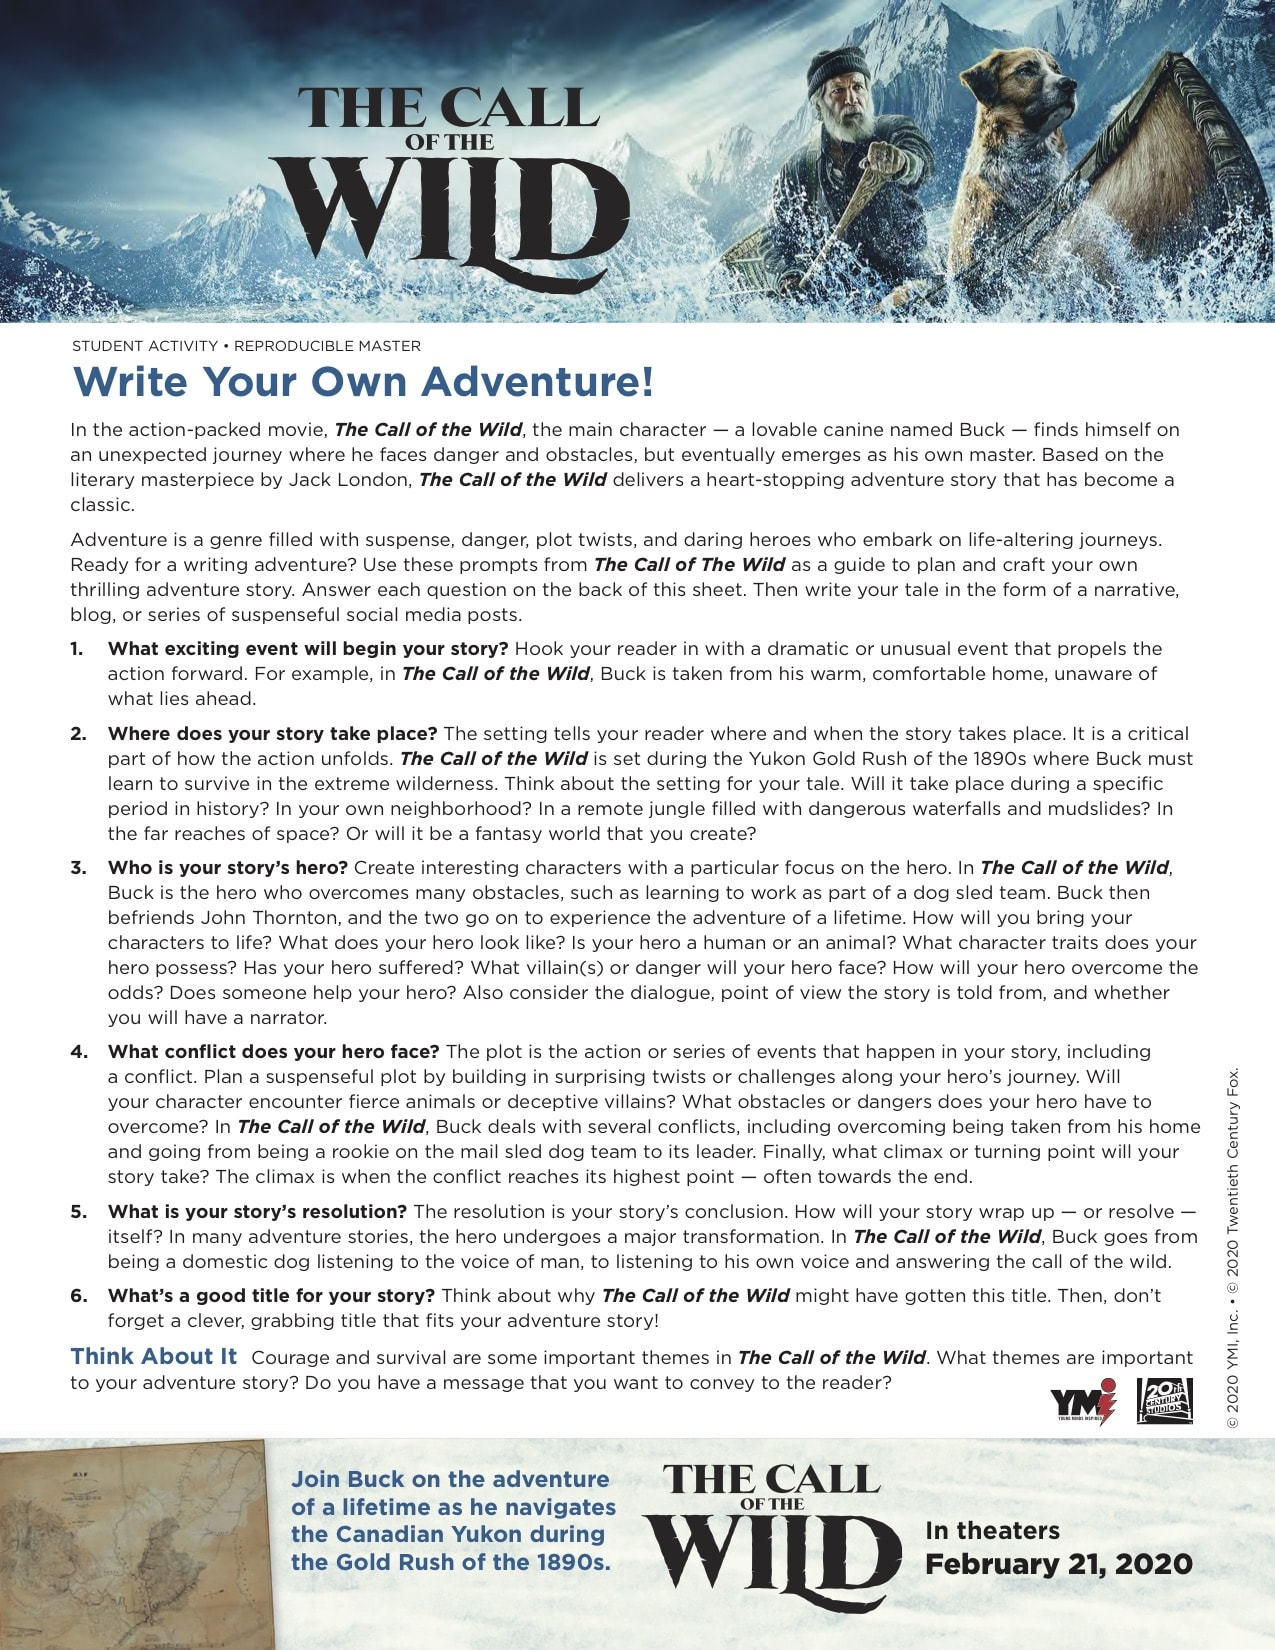 Call of the Wild_Student Activity copy